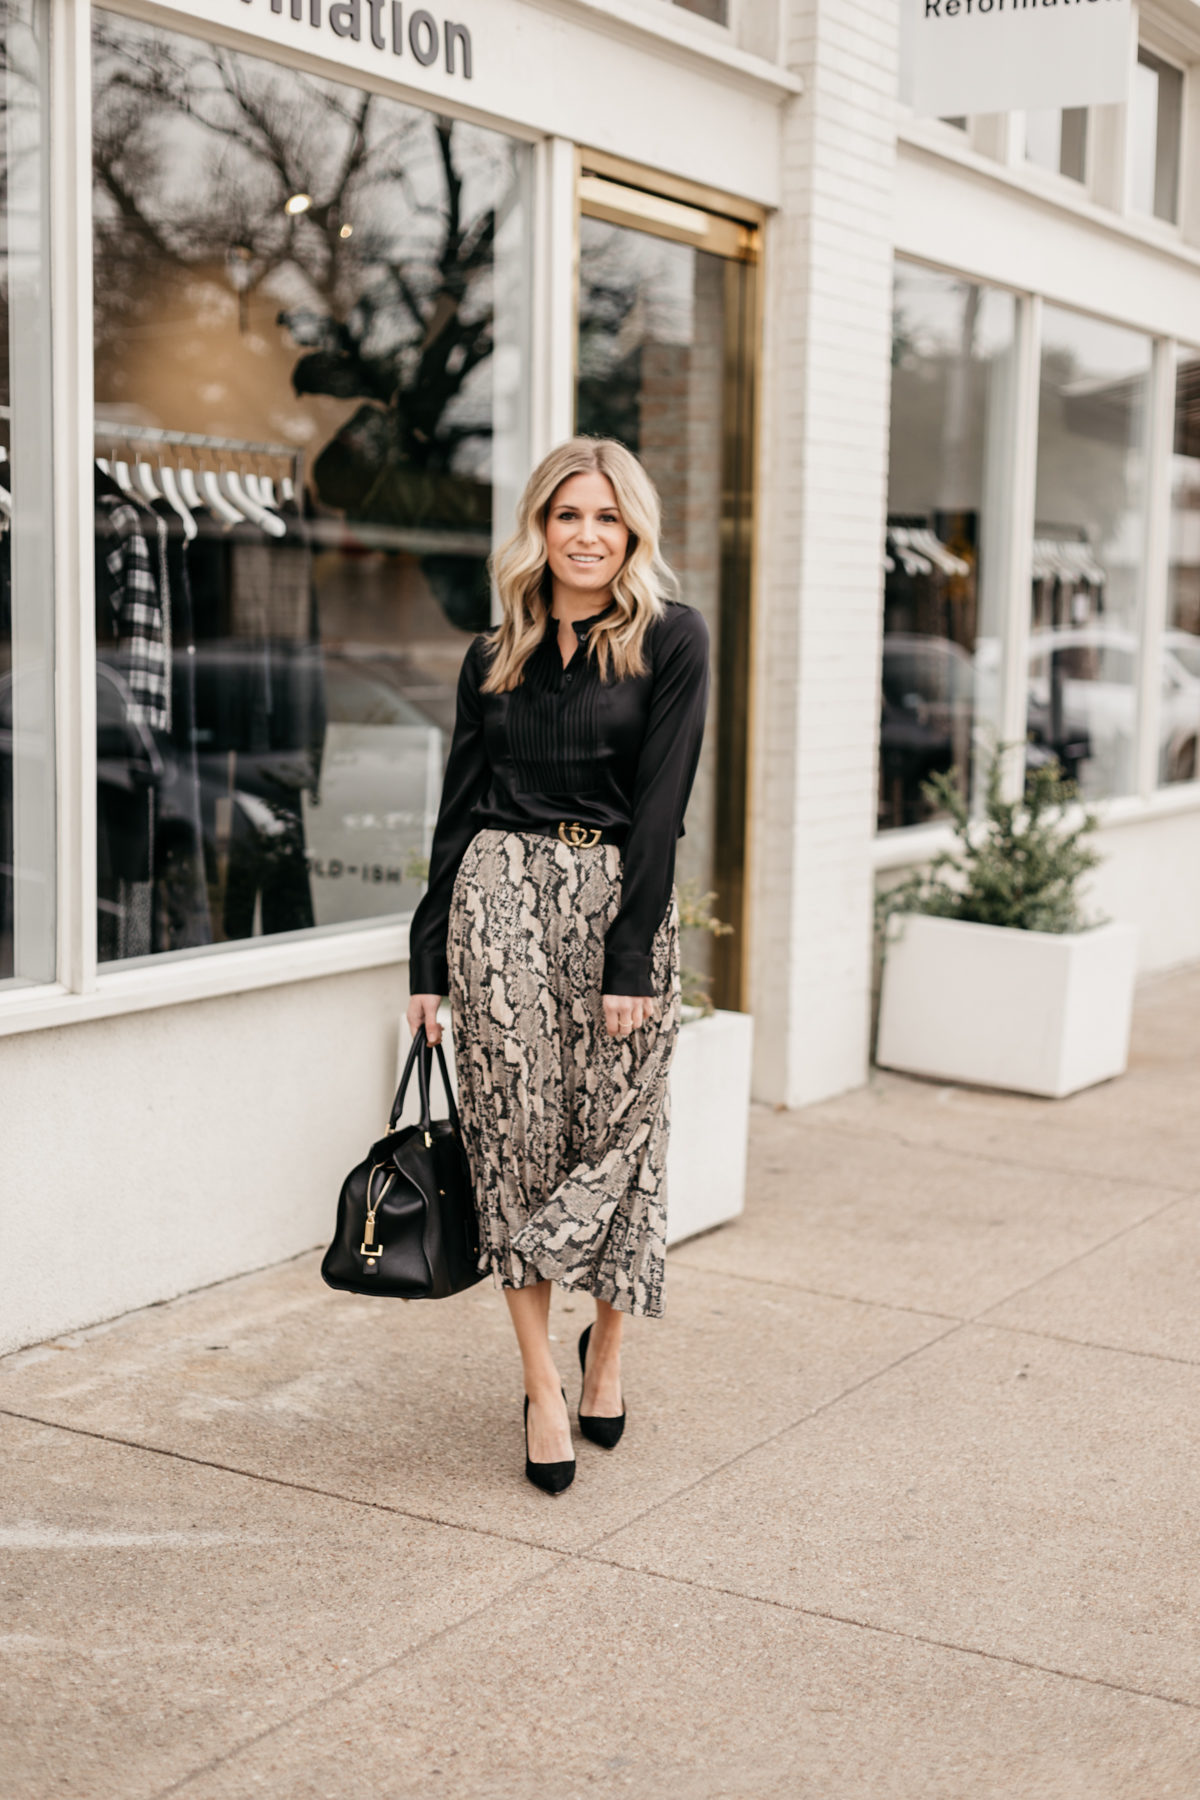 Leopard Skirt // Black Blouse // Black Heels // Gucci Belt (dupe here)